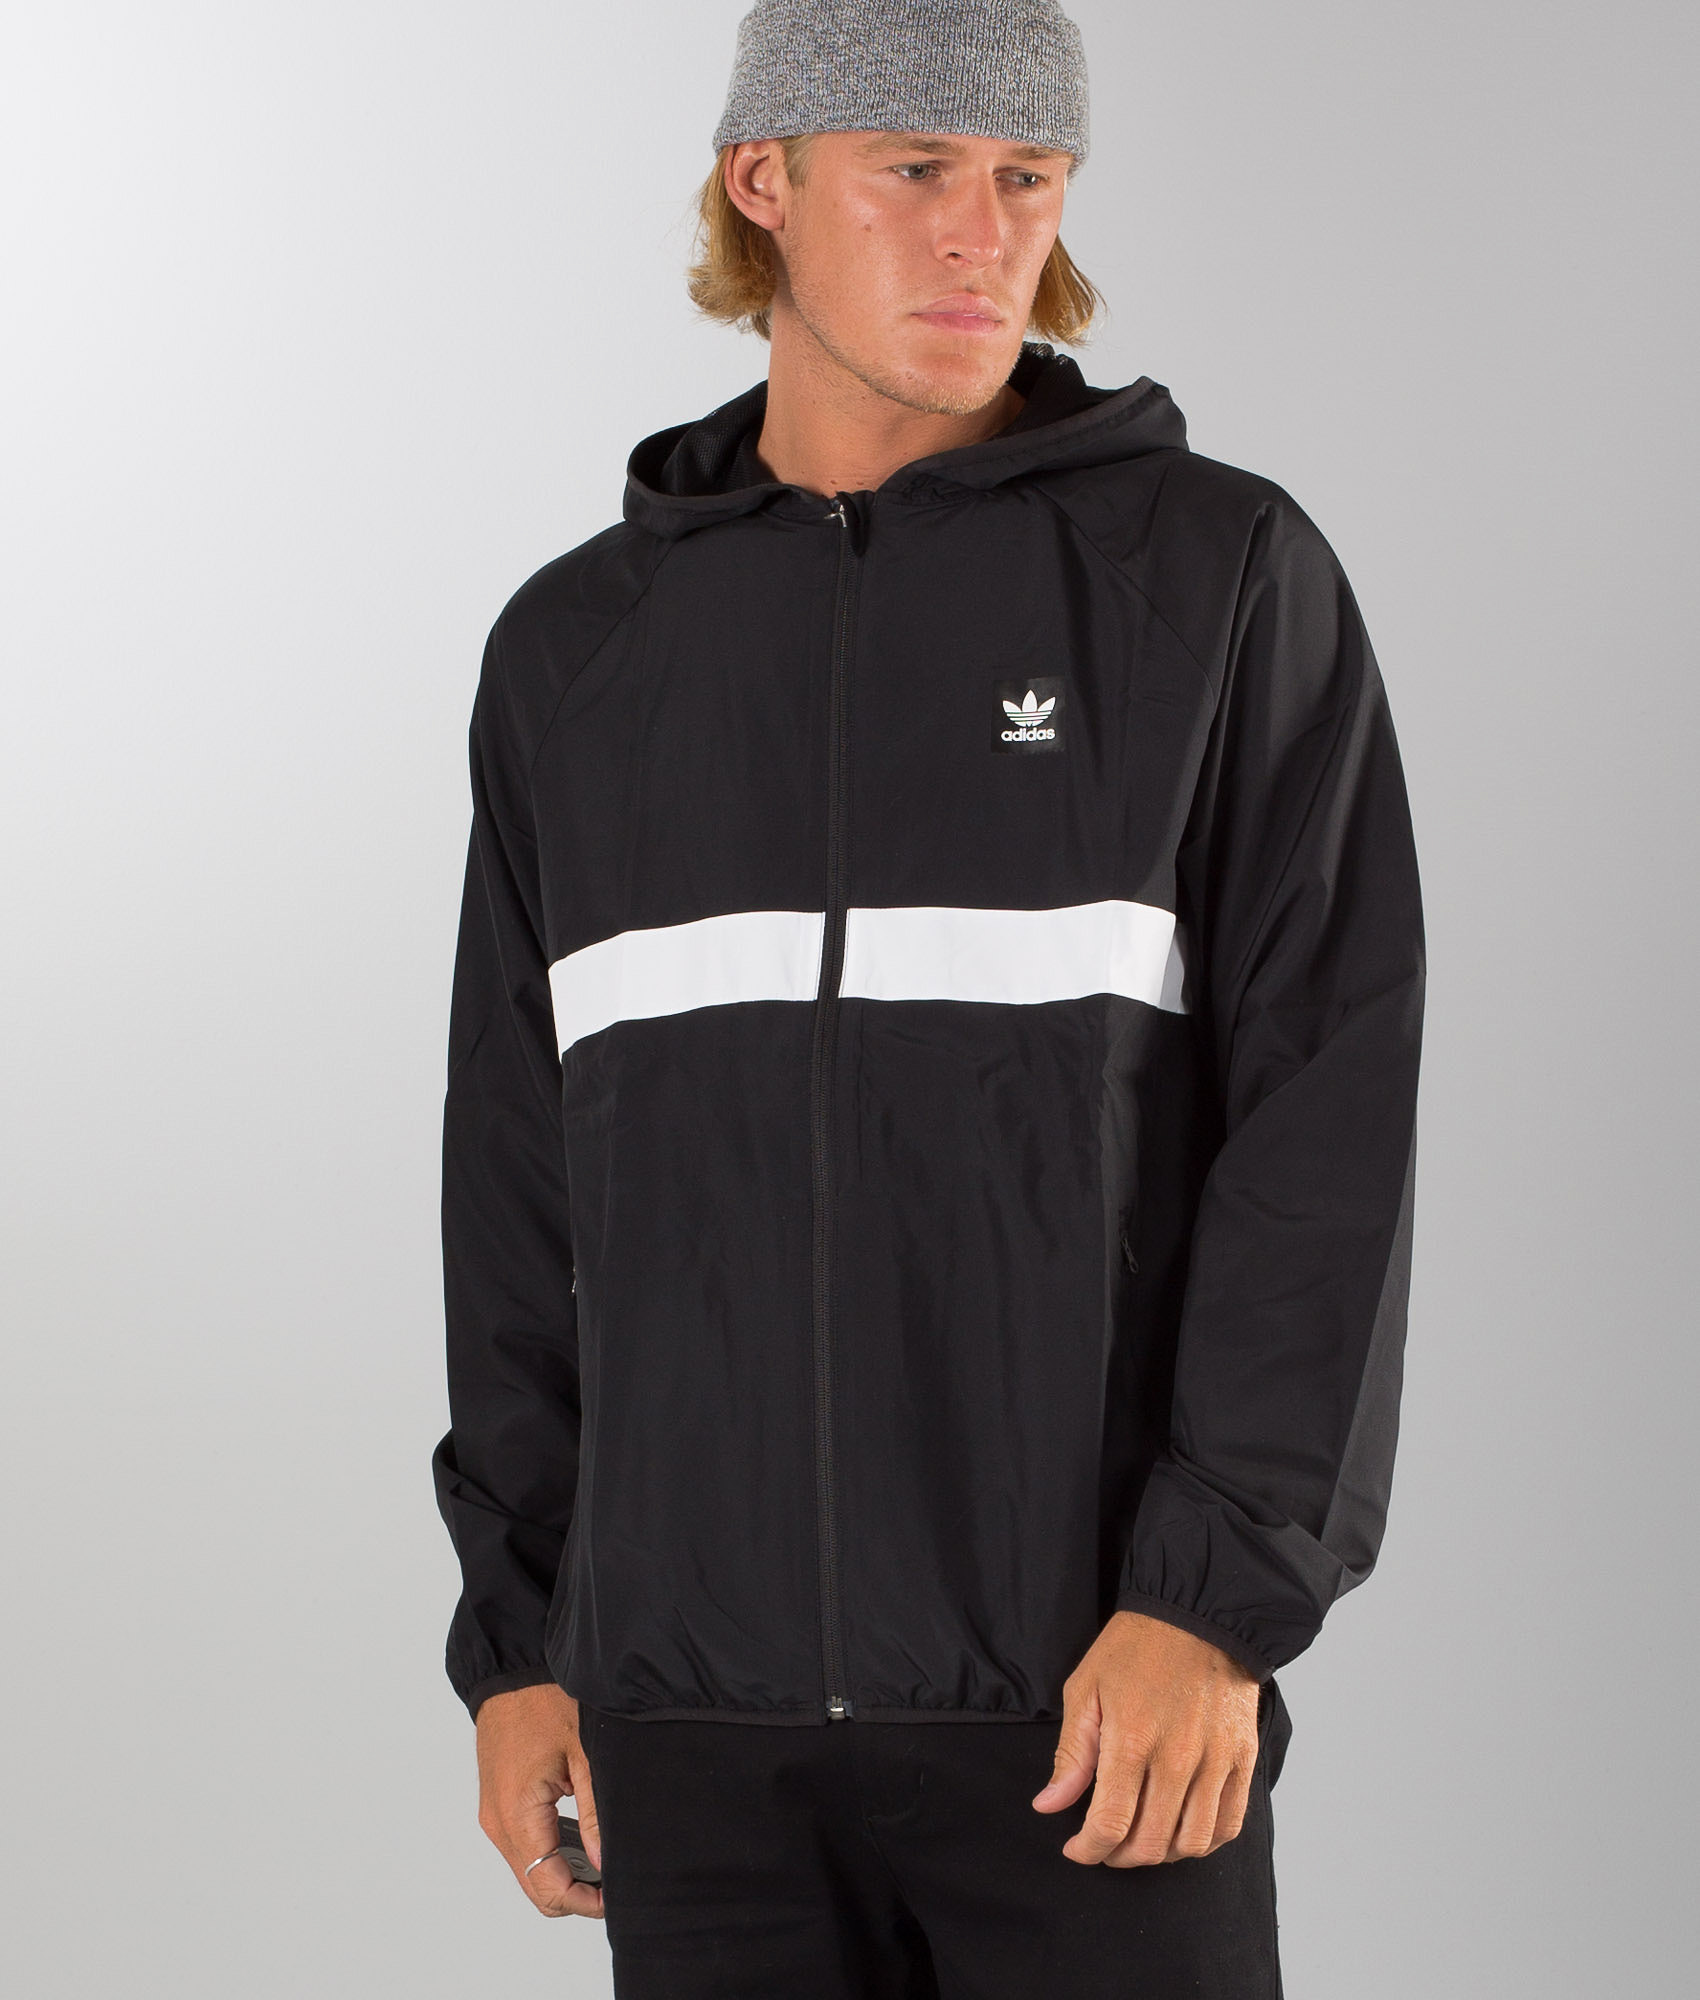 492b24f58 Adidas Skateboarding Blackbird Wind Jacket Black/White